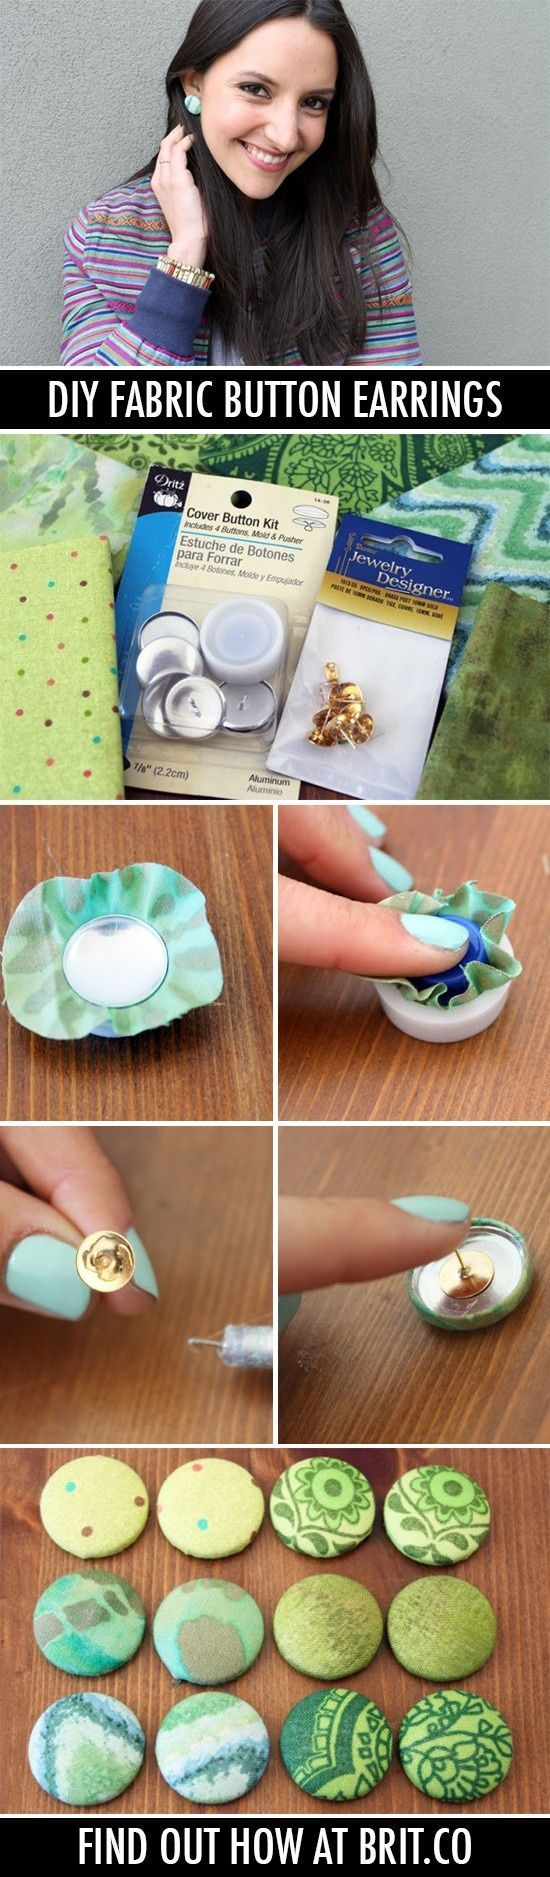 as a Button! Easy DIY Fabric Button Earrings (Thumbtacks, too?) diy fabric button earrings - I've seen a couple of friends with these and they are REALLY cute!(Thumbtacks, too?) diy fabric button earrings - I've seen a couple of friends with these and they are REALLY cute!